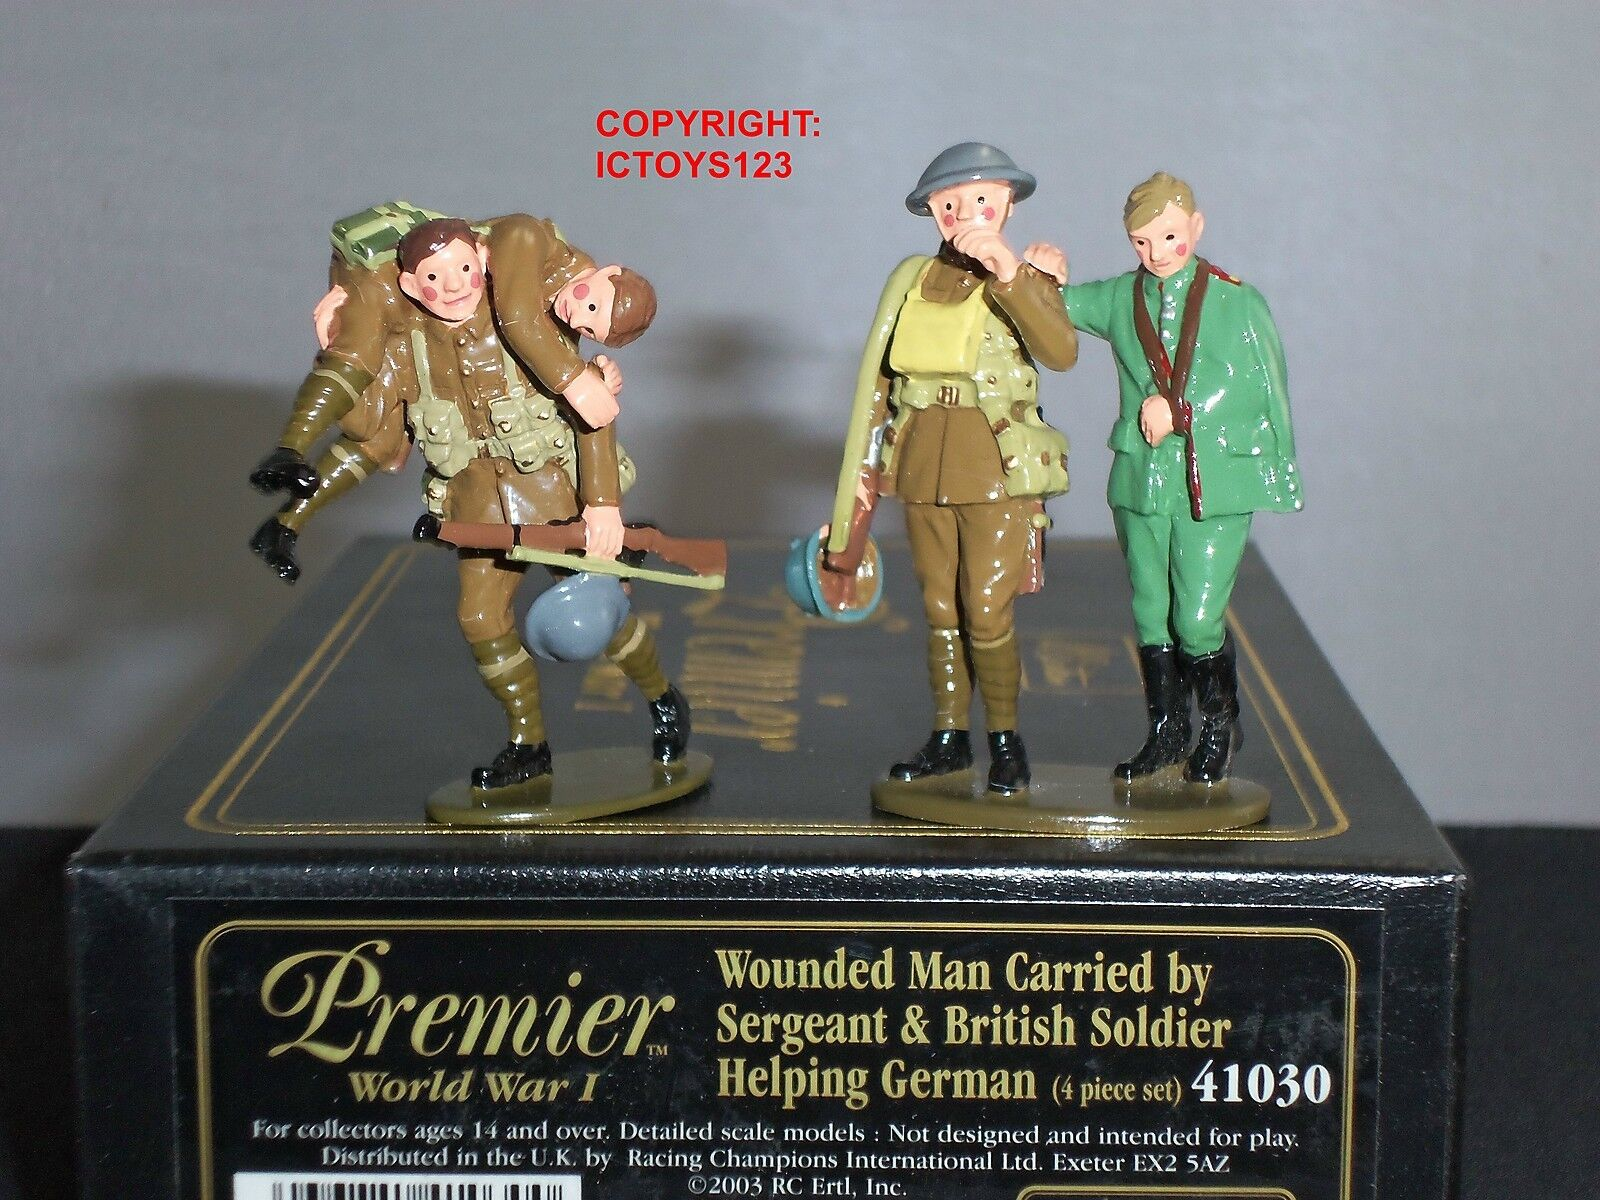 BRITAINS 41030 WW1 WOUNDED MAN CARRIED + BRITISH HELPING GERMAN TOY SOLDIER SET